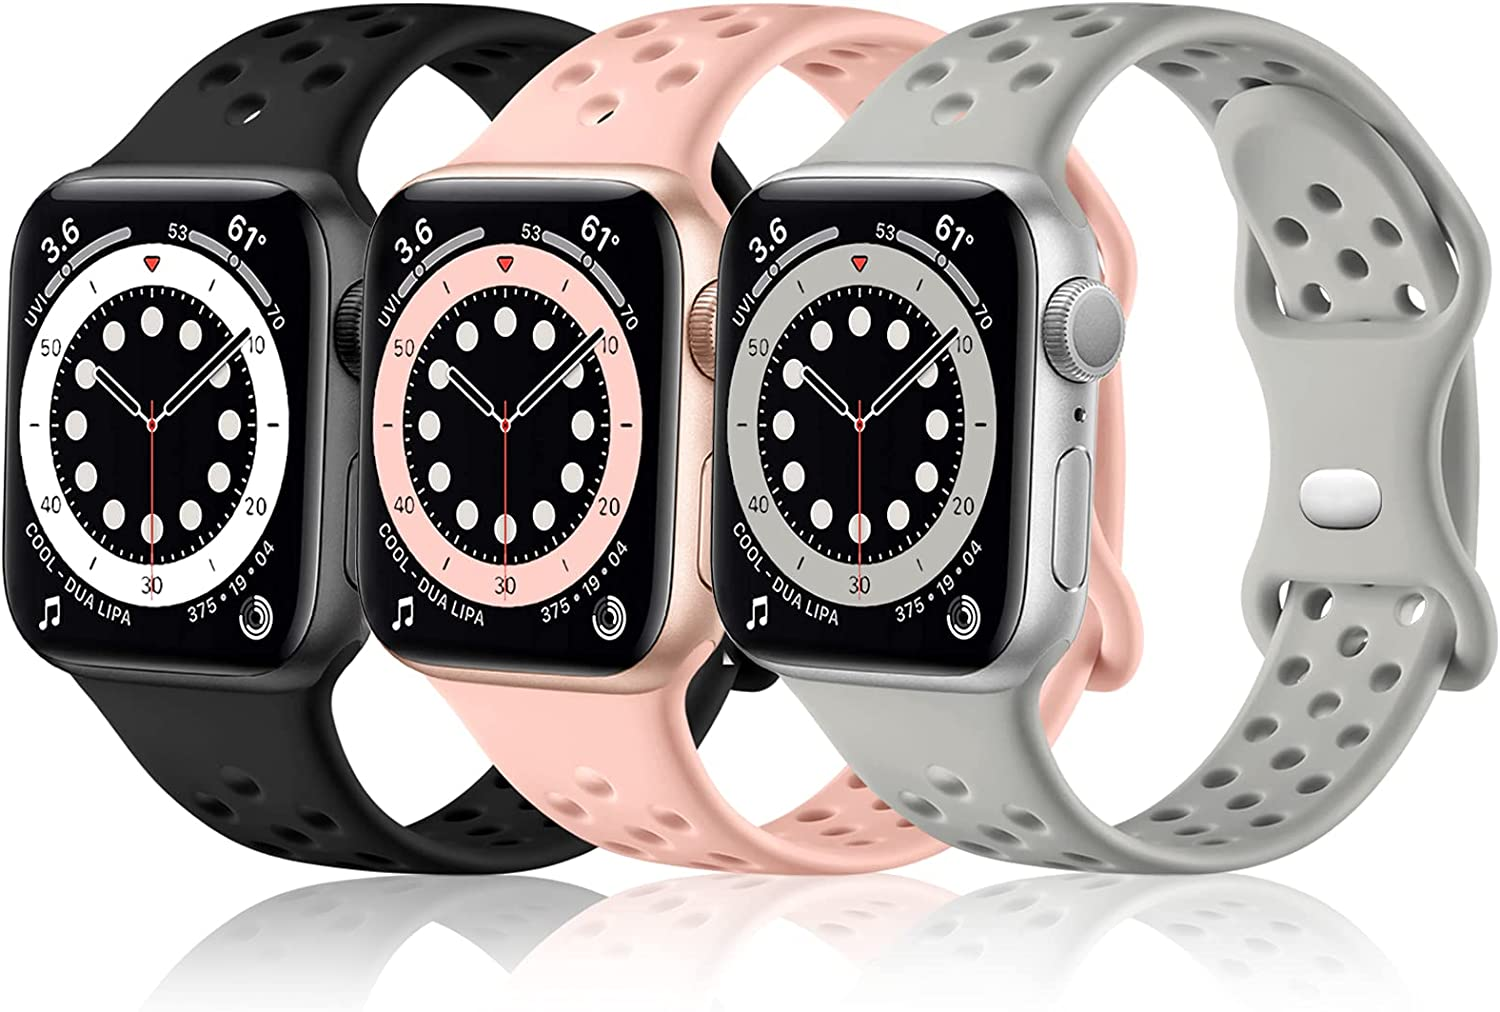 Rubinom Sport Bands Compatible for Apple Watch Band 40mm 38mm Women Men, Silicone Breathable Holes Replacement Wristband Accessories for iWatch SE Series 6/5/4/3/2/1, 3 Pack of Black/Gray/Pink Sand